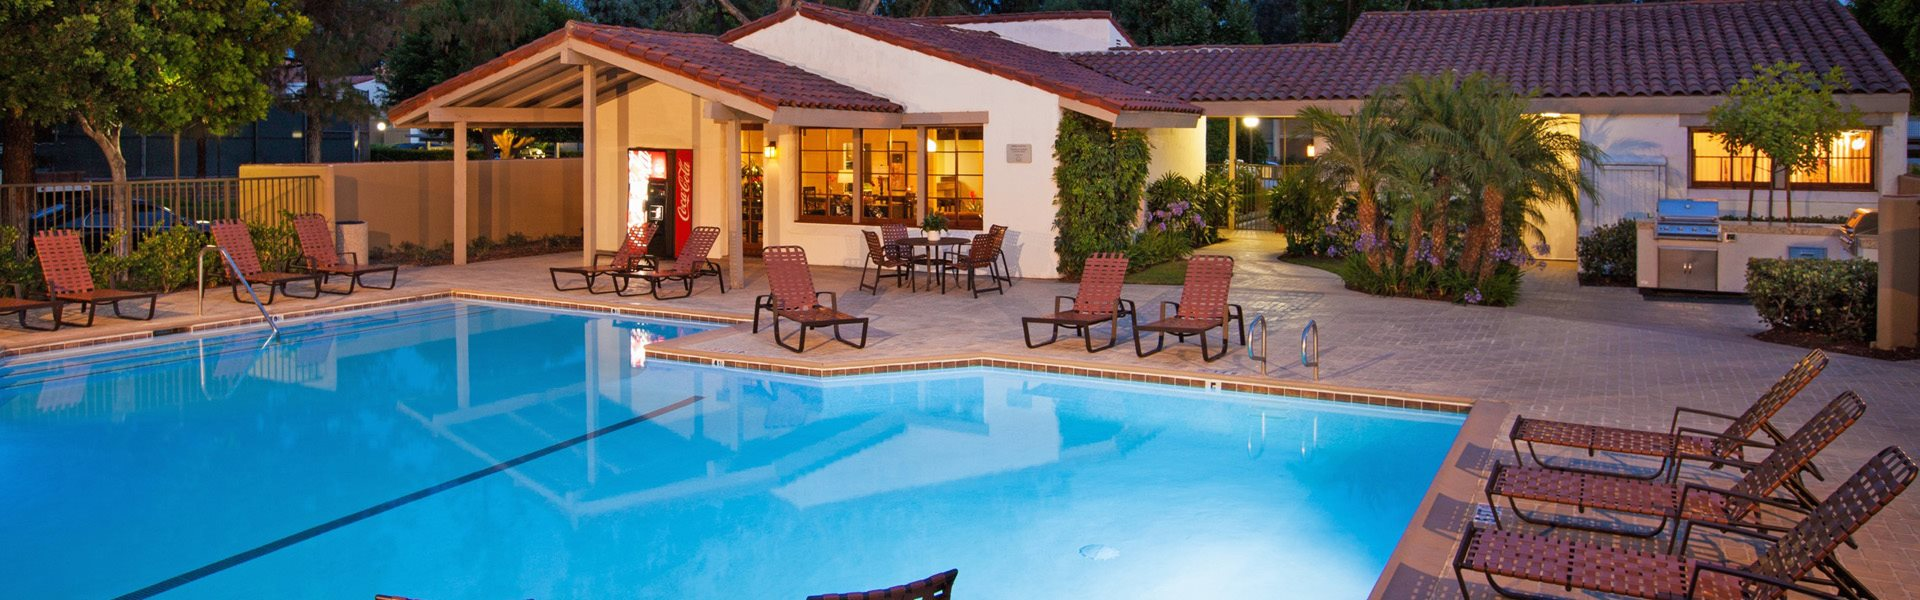 The vineyards apartments in anaheim hills ca for Garden hills pool hours